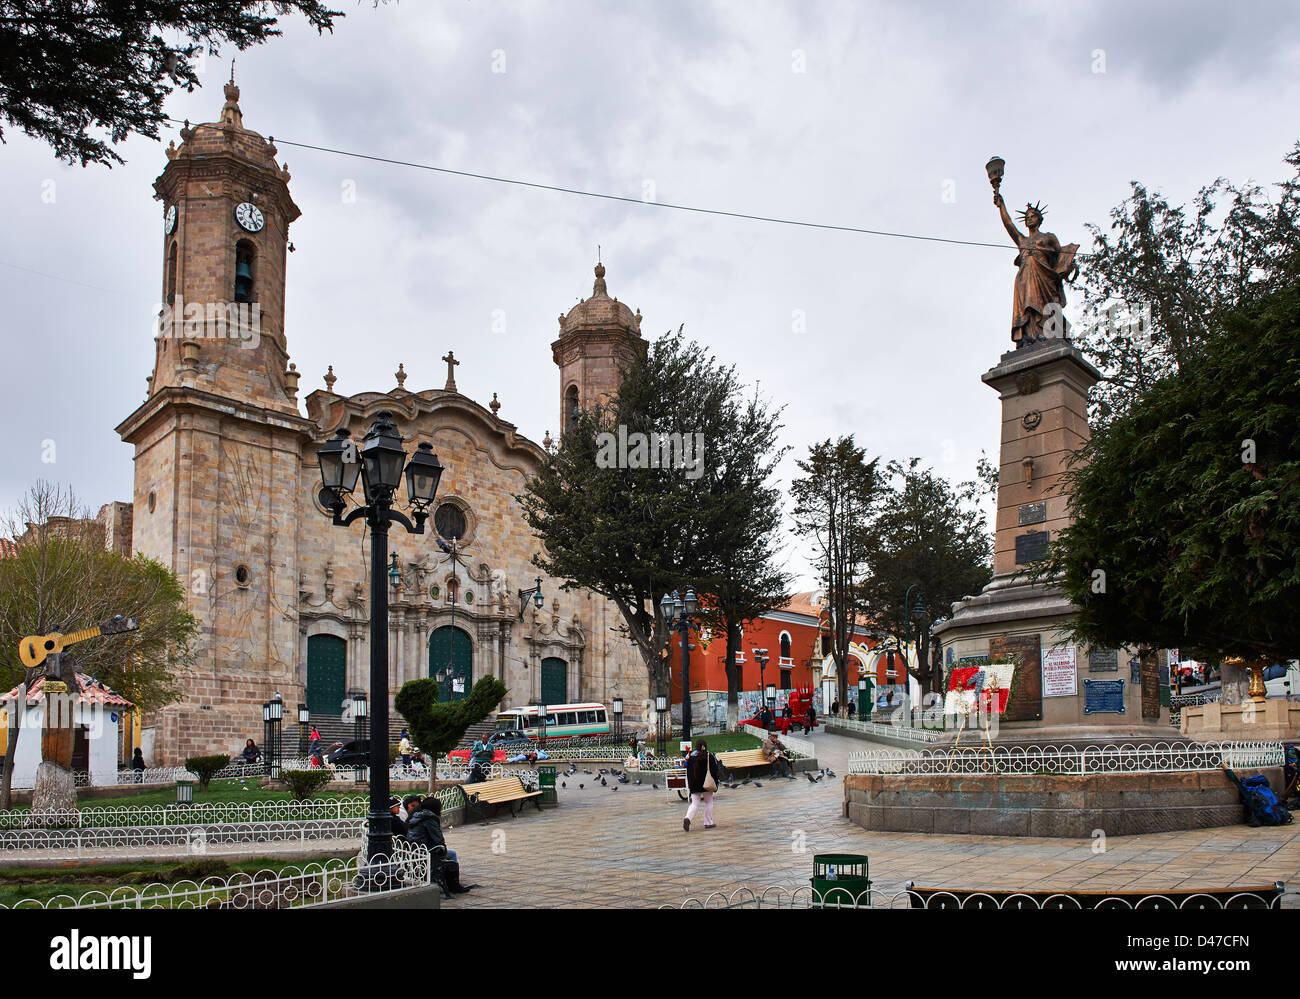 la Catedral, Potosi, Bolivia, South America - Stock Image